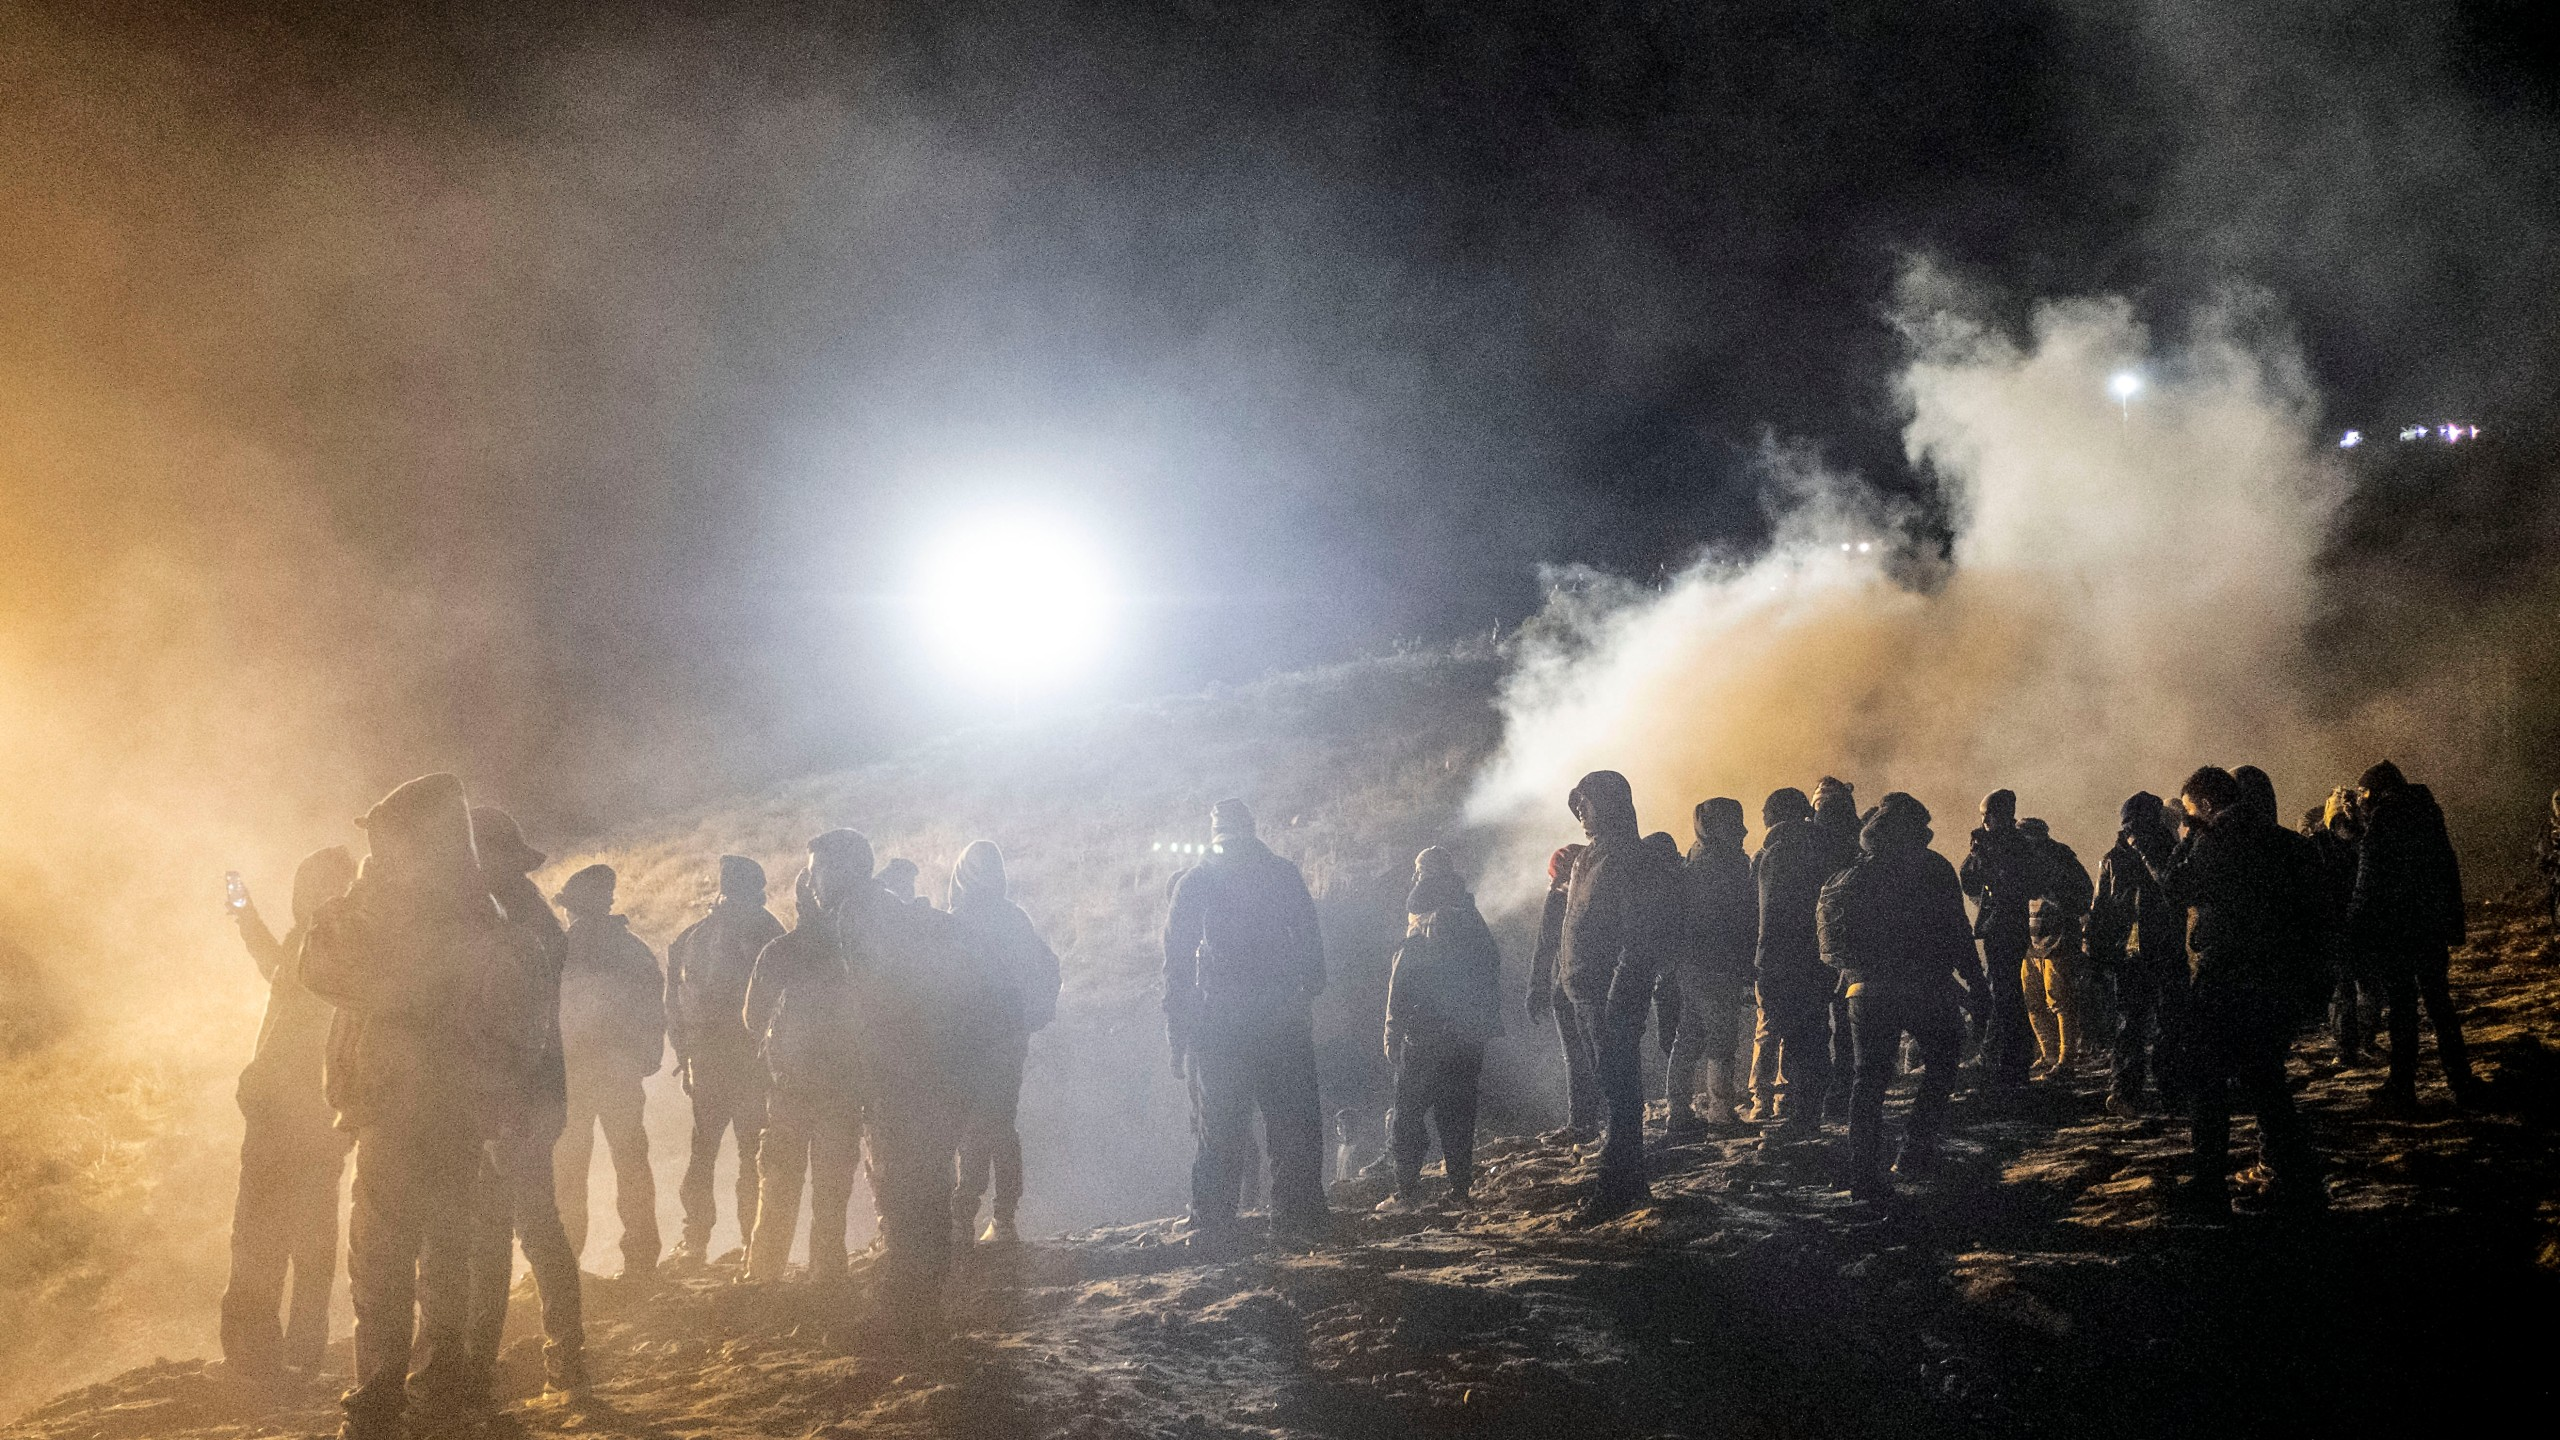 Central American migrants stand amid a cloud of tear gas thrown by the US border patrol, after they tried to cross from Tijuana to San Diego in the US, as seen from Tijuana, Baja California state, Mexico on January 1, 2019. (Credit: GUILLERMO ARIAS/AFP/Getty Images)